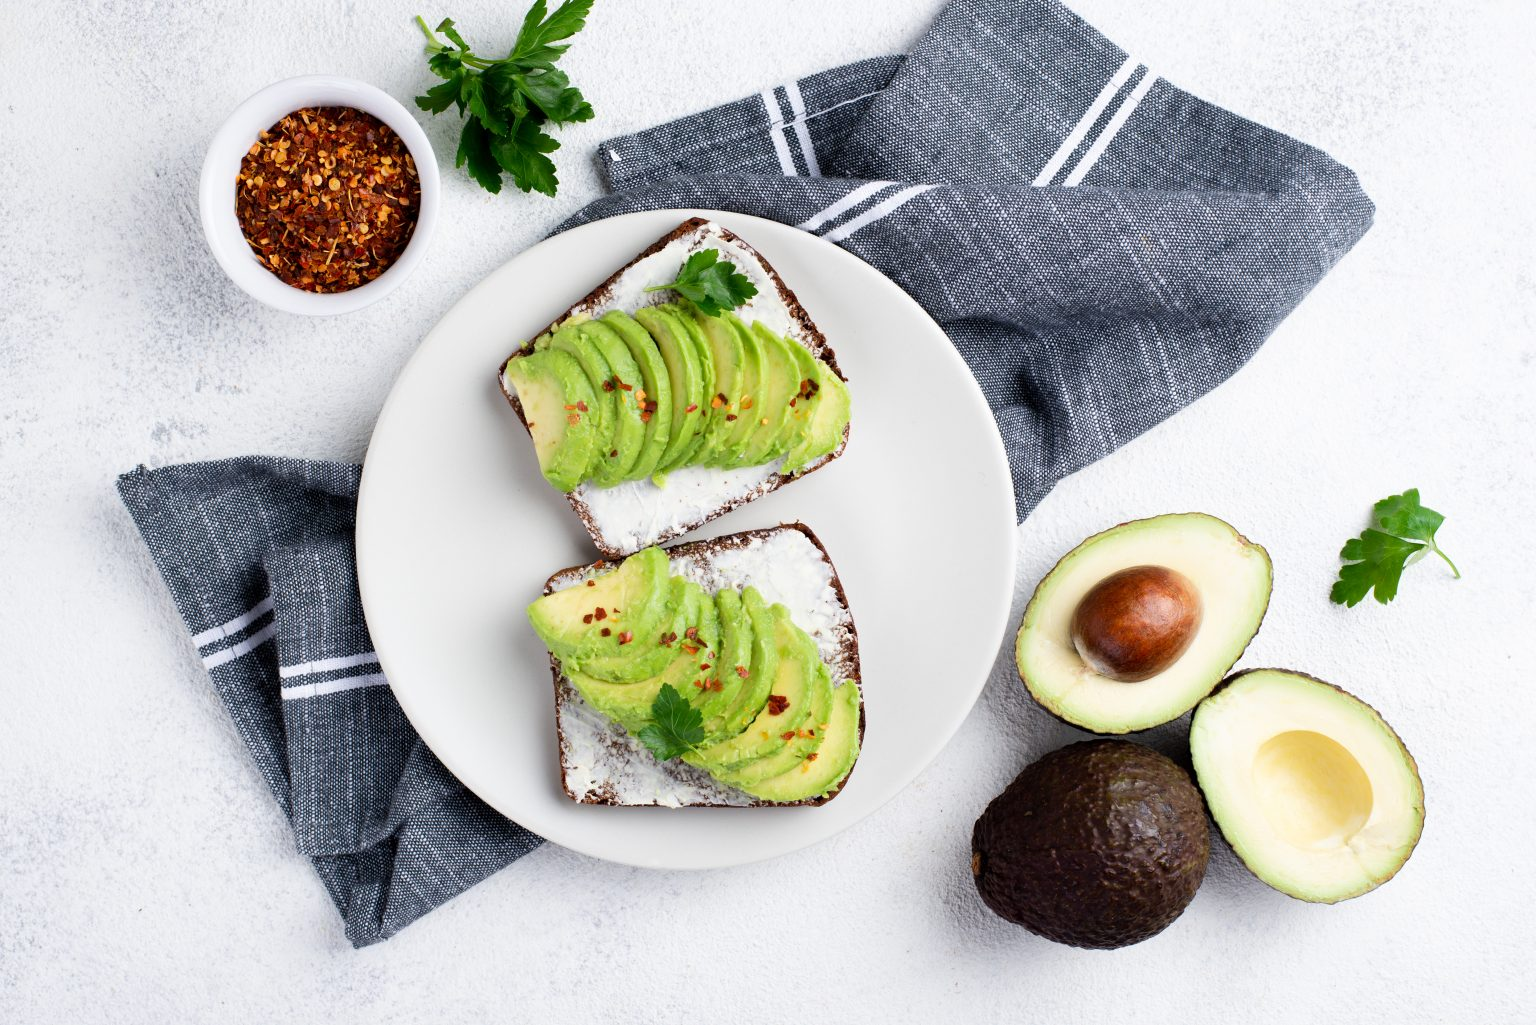 Avocado as it is rich in vitamin C and provides your hair the fatty acids needed to protect the hair